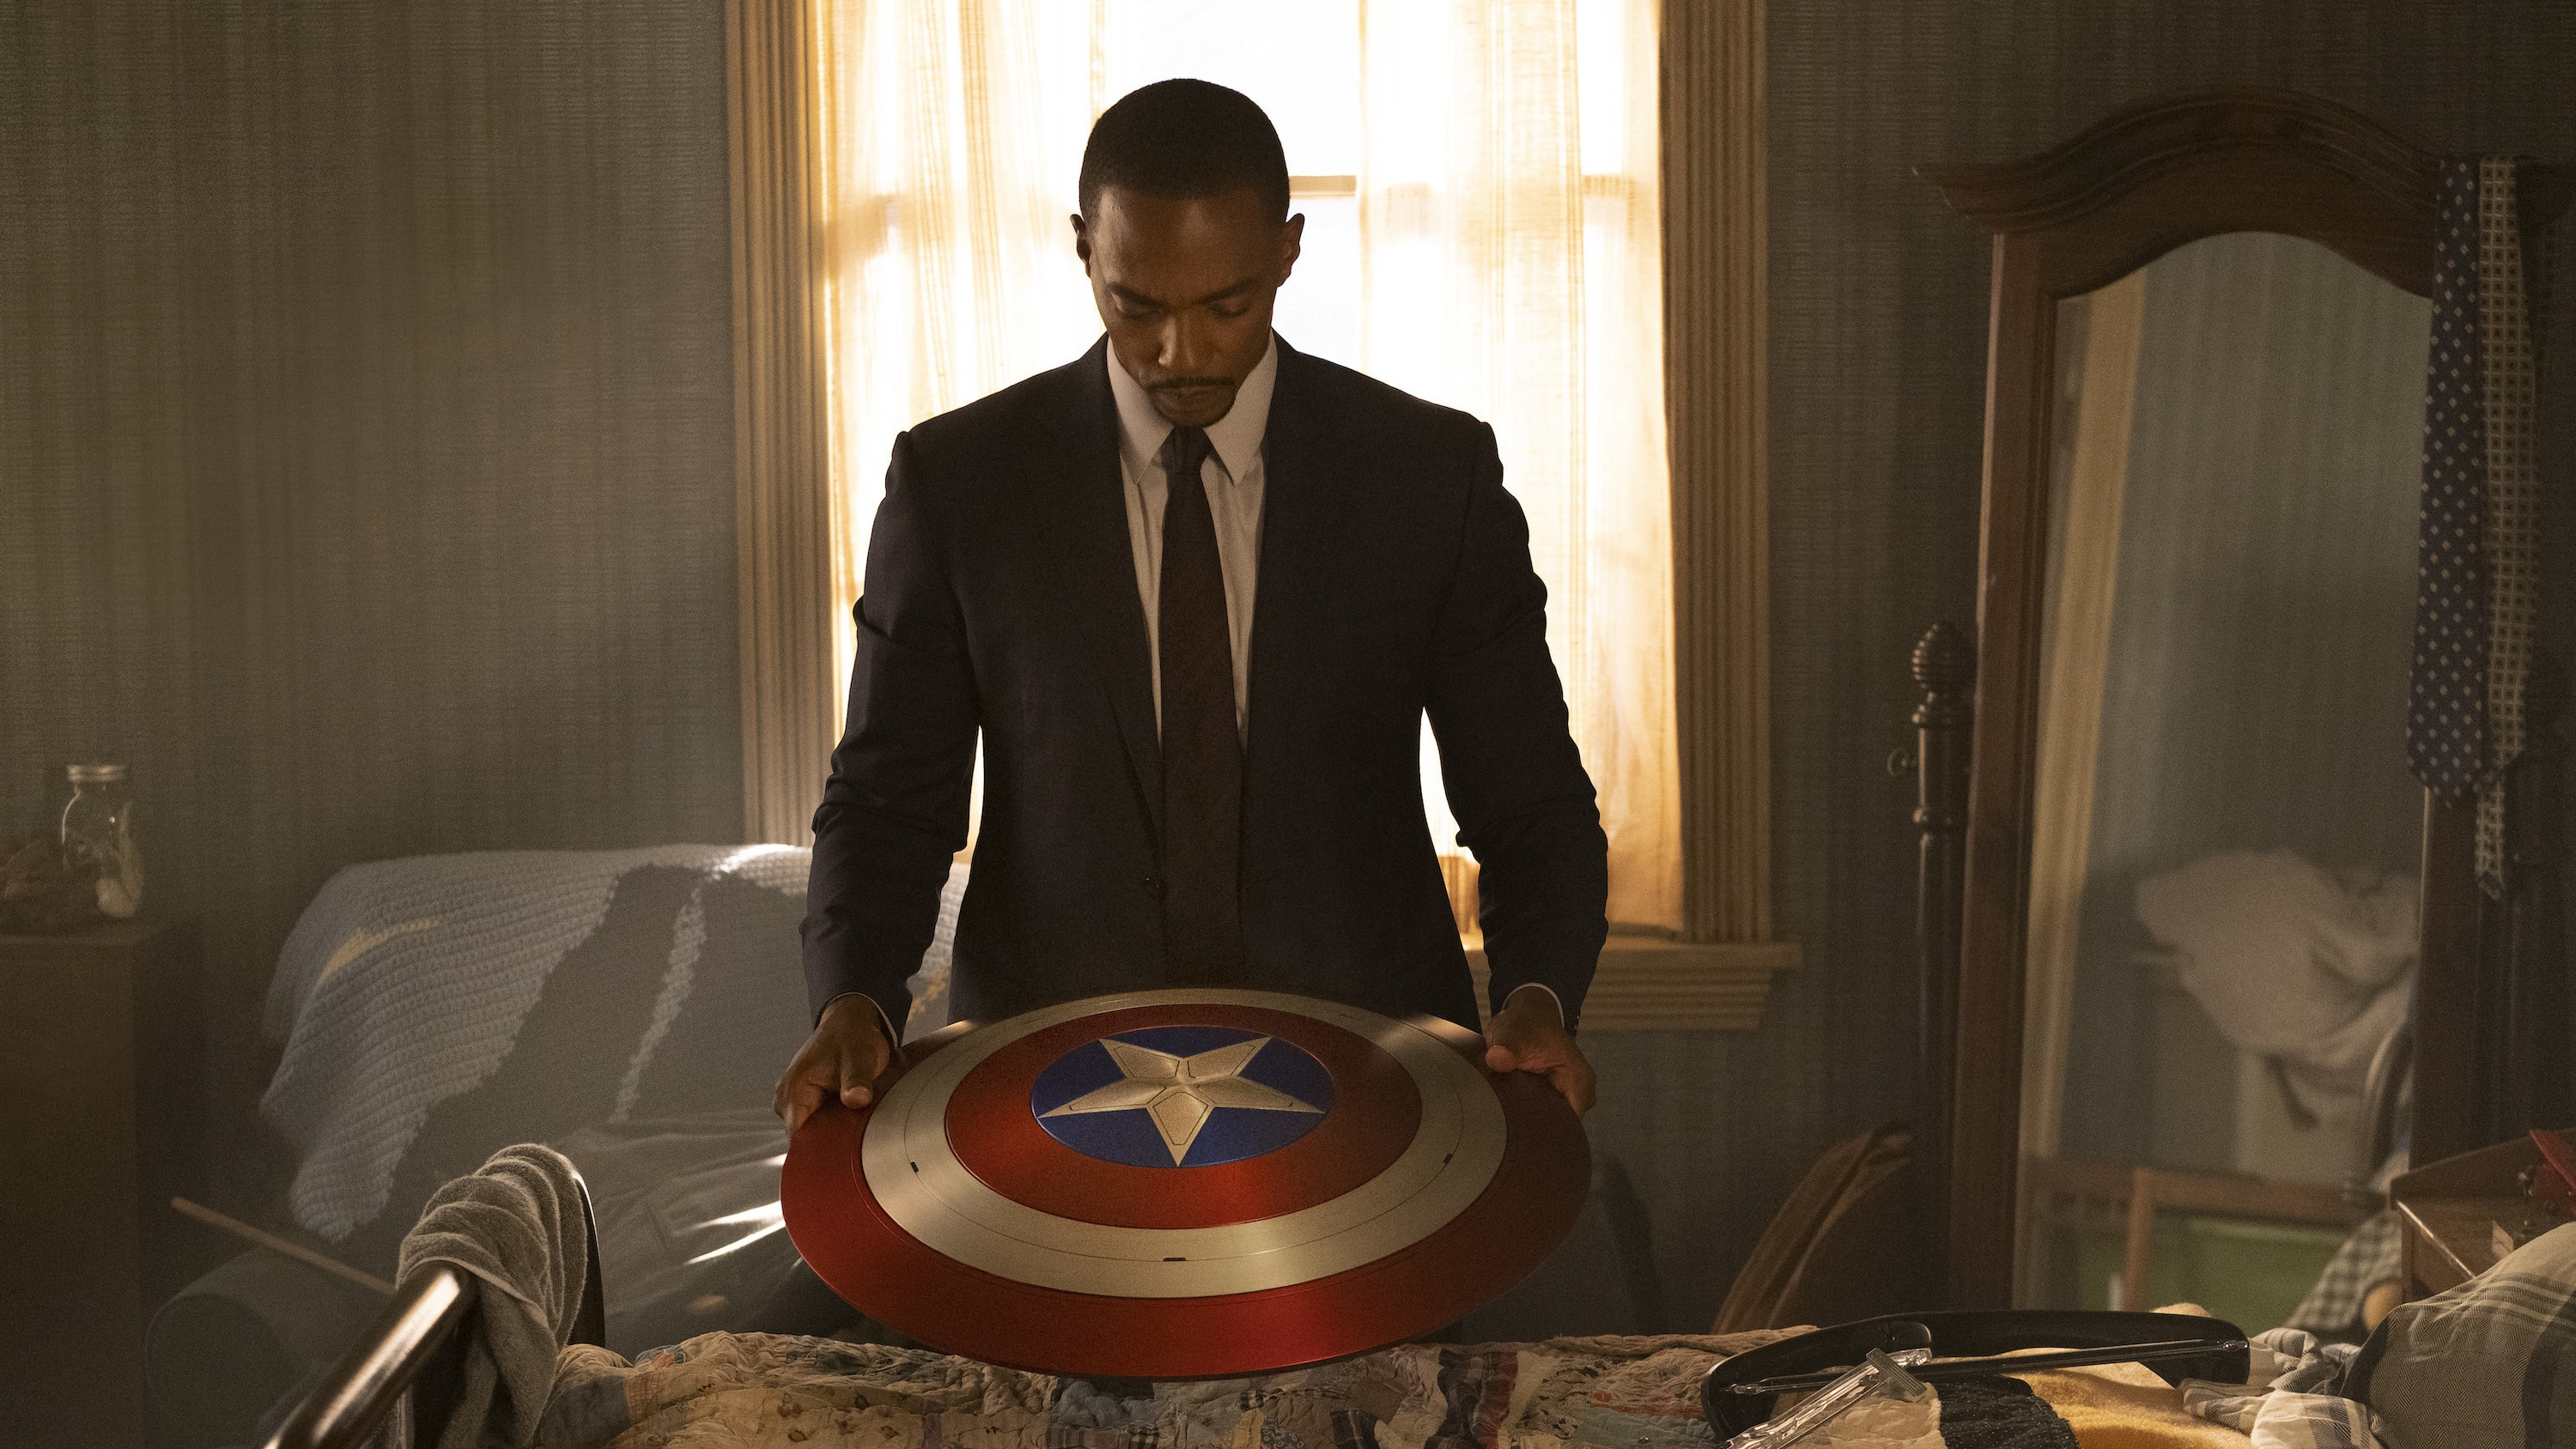 Falcon/Sam Wilson (Anthony Mackie) in Marvel Studios' THE FALCON AND THE WINTER SOLDIER exclusively on Disney+. Photo by Chuck Zlotnick. ©Marvel Studios 2020. All Rights Reserved.